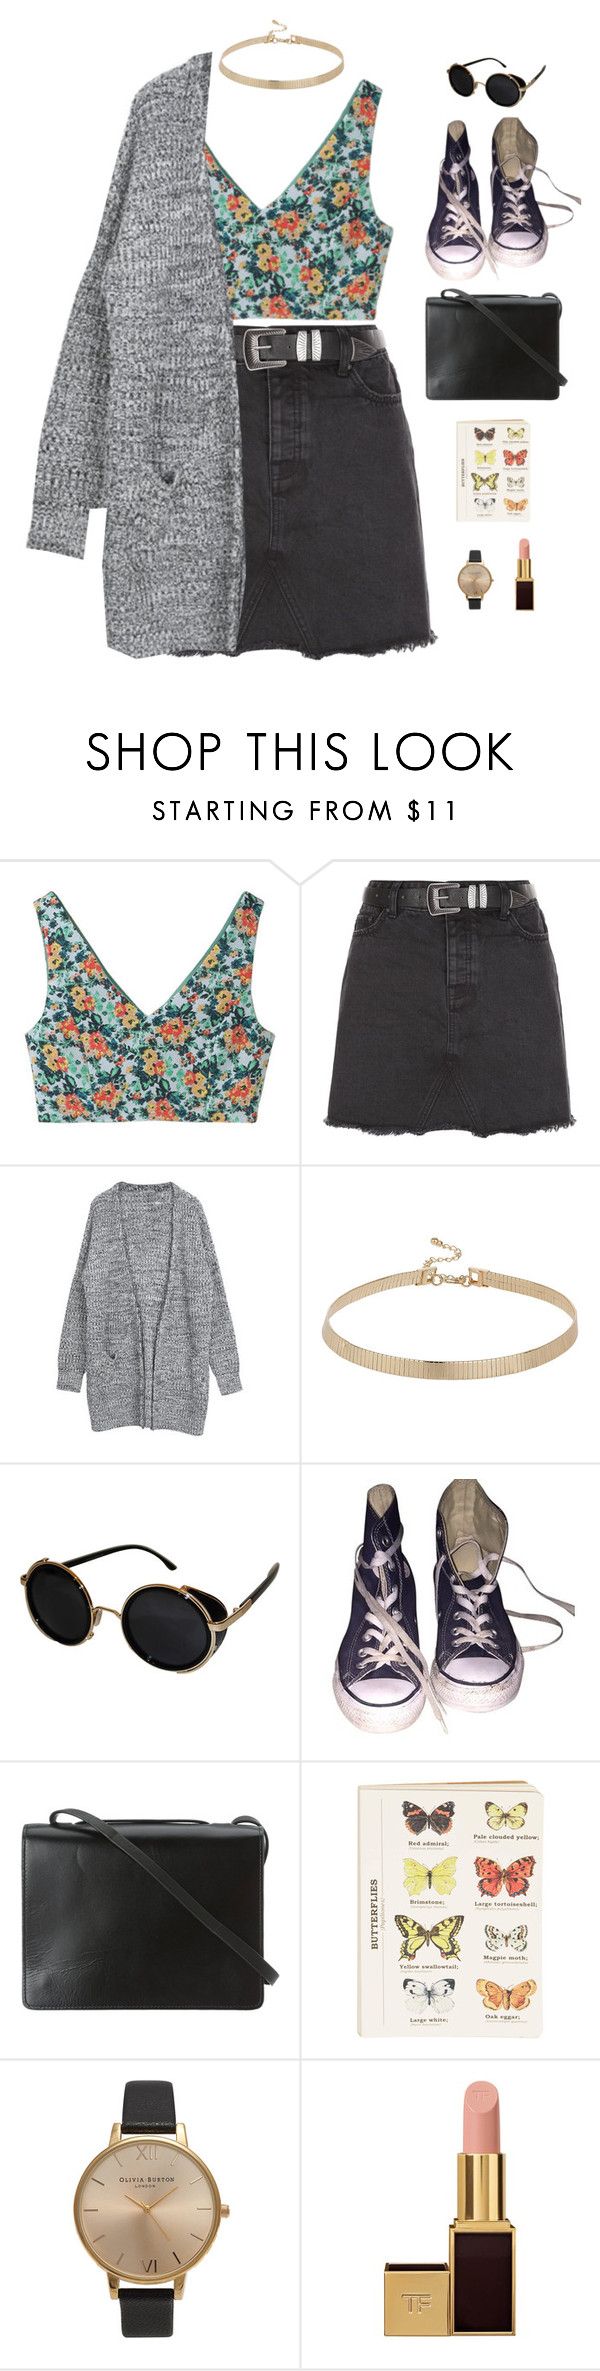 """""""garden."""" by gre17 ❤ liked on Polyvore featuring Aula Aila, New Look, Topshop, Converse, BCBGMAXAZRIA, Tom Ford, vintage, VintageInspired, floralprints and fashionset"""